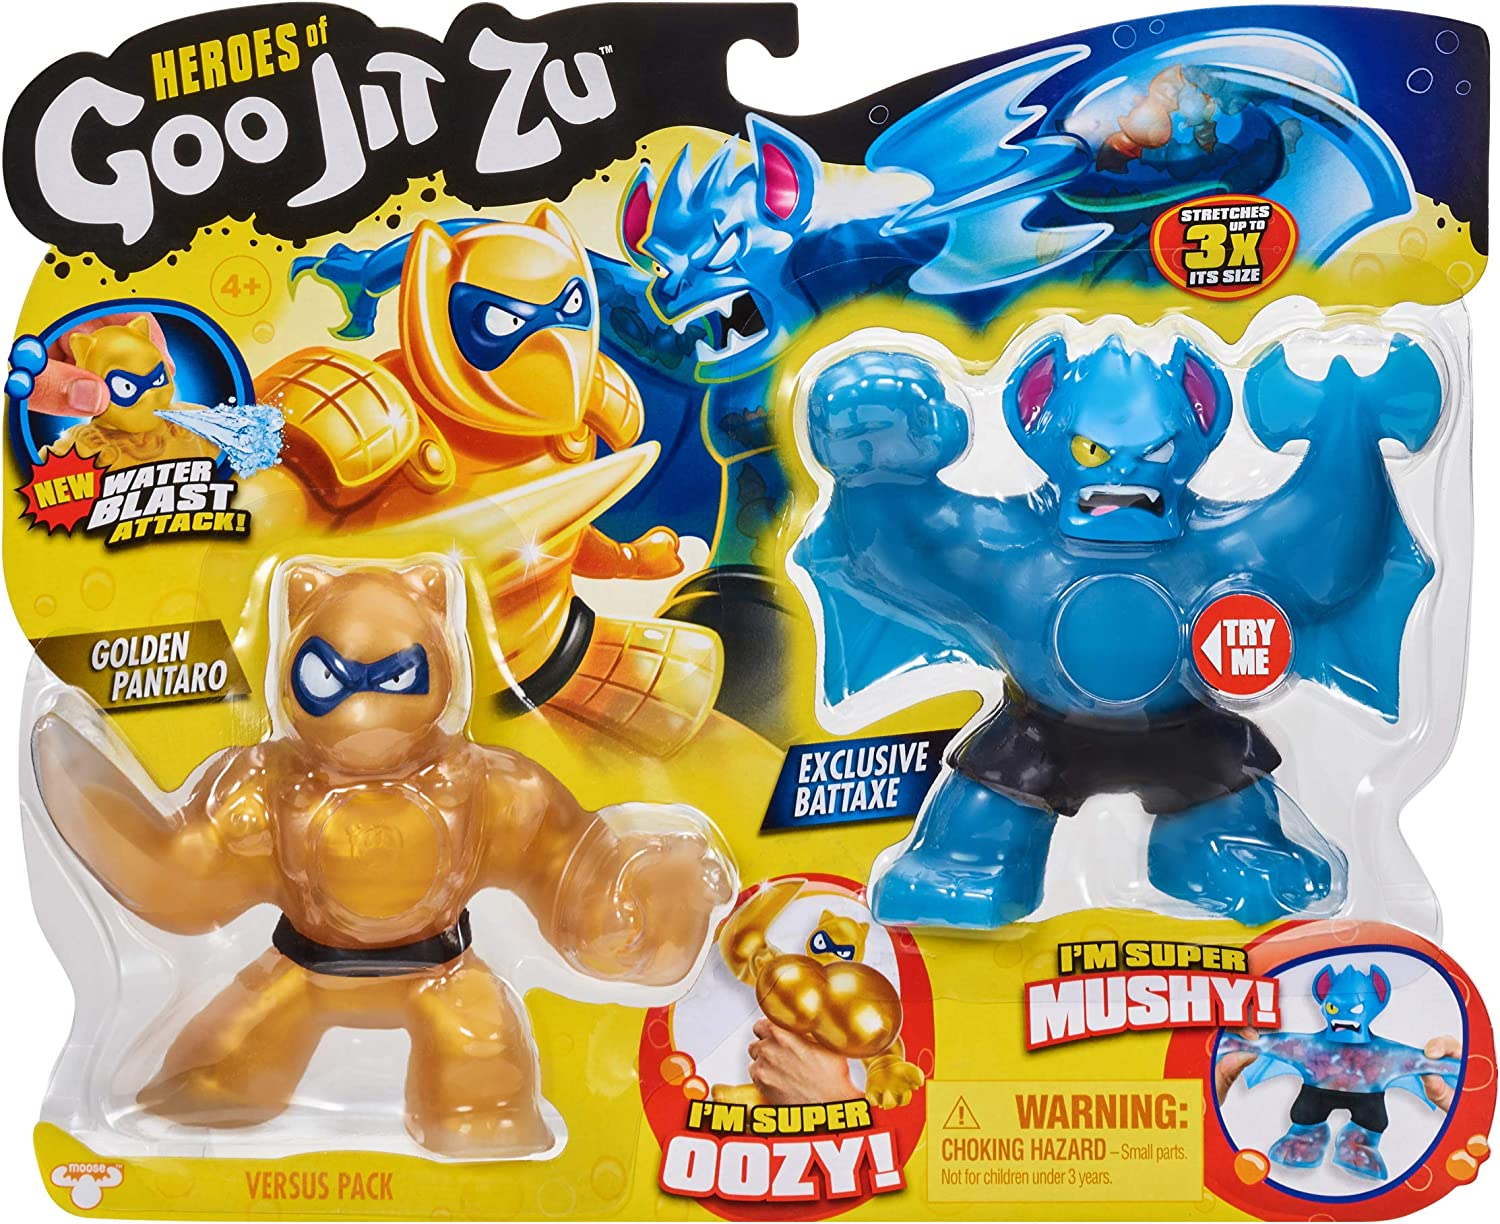 Details about  /Heroes of Goo Jit Zu Squishy Action Figures 2 Pack Golden Blazagon Vs Rockjaw